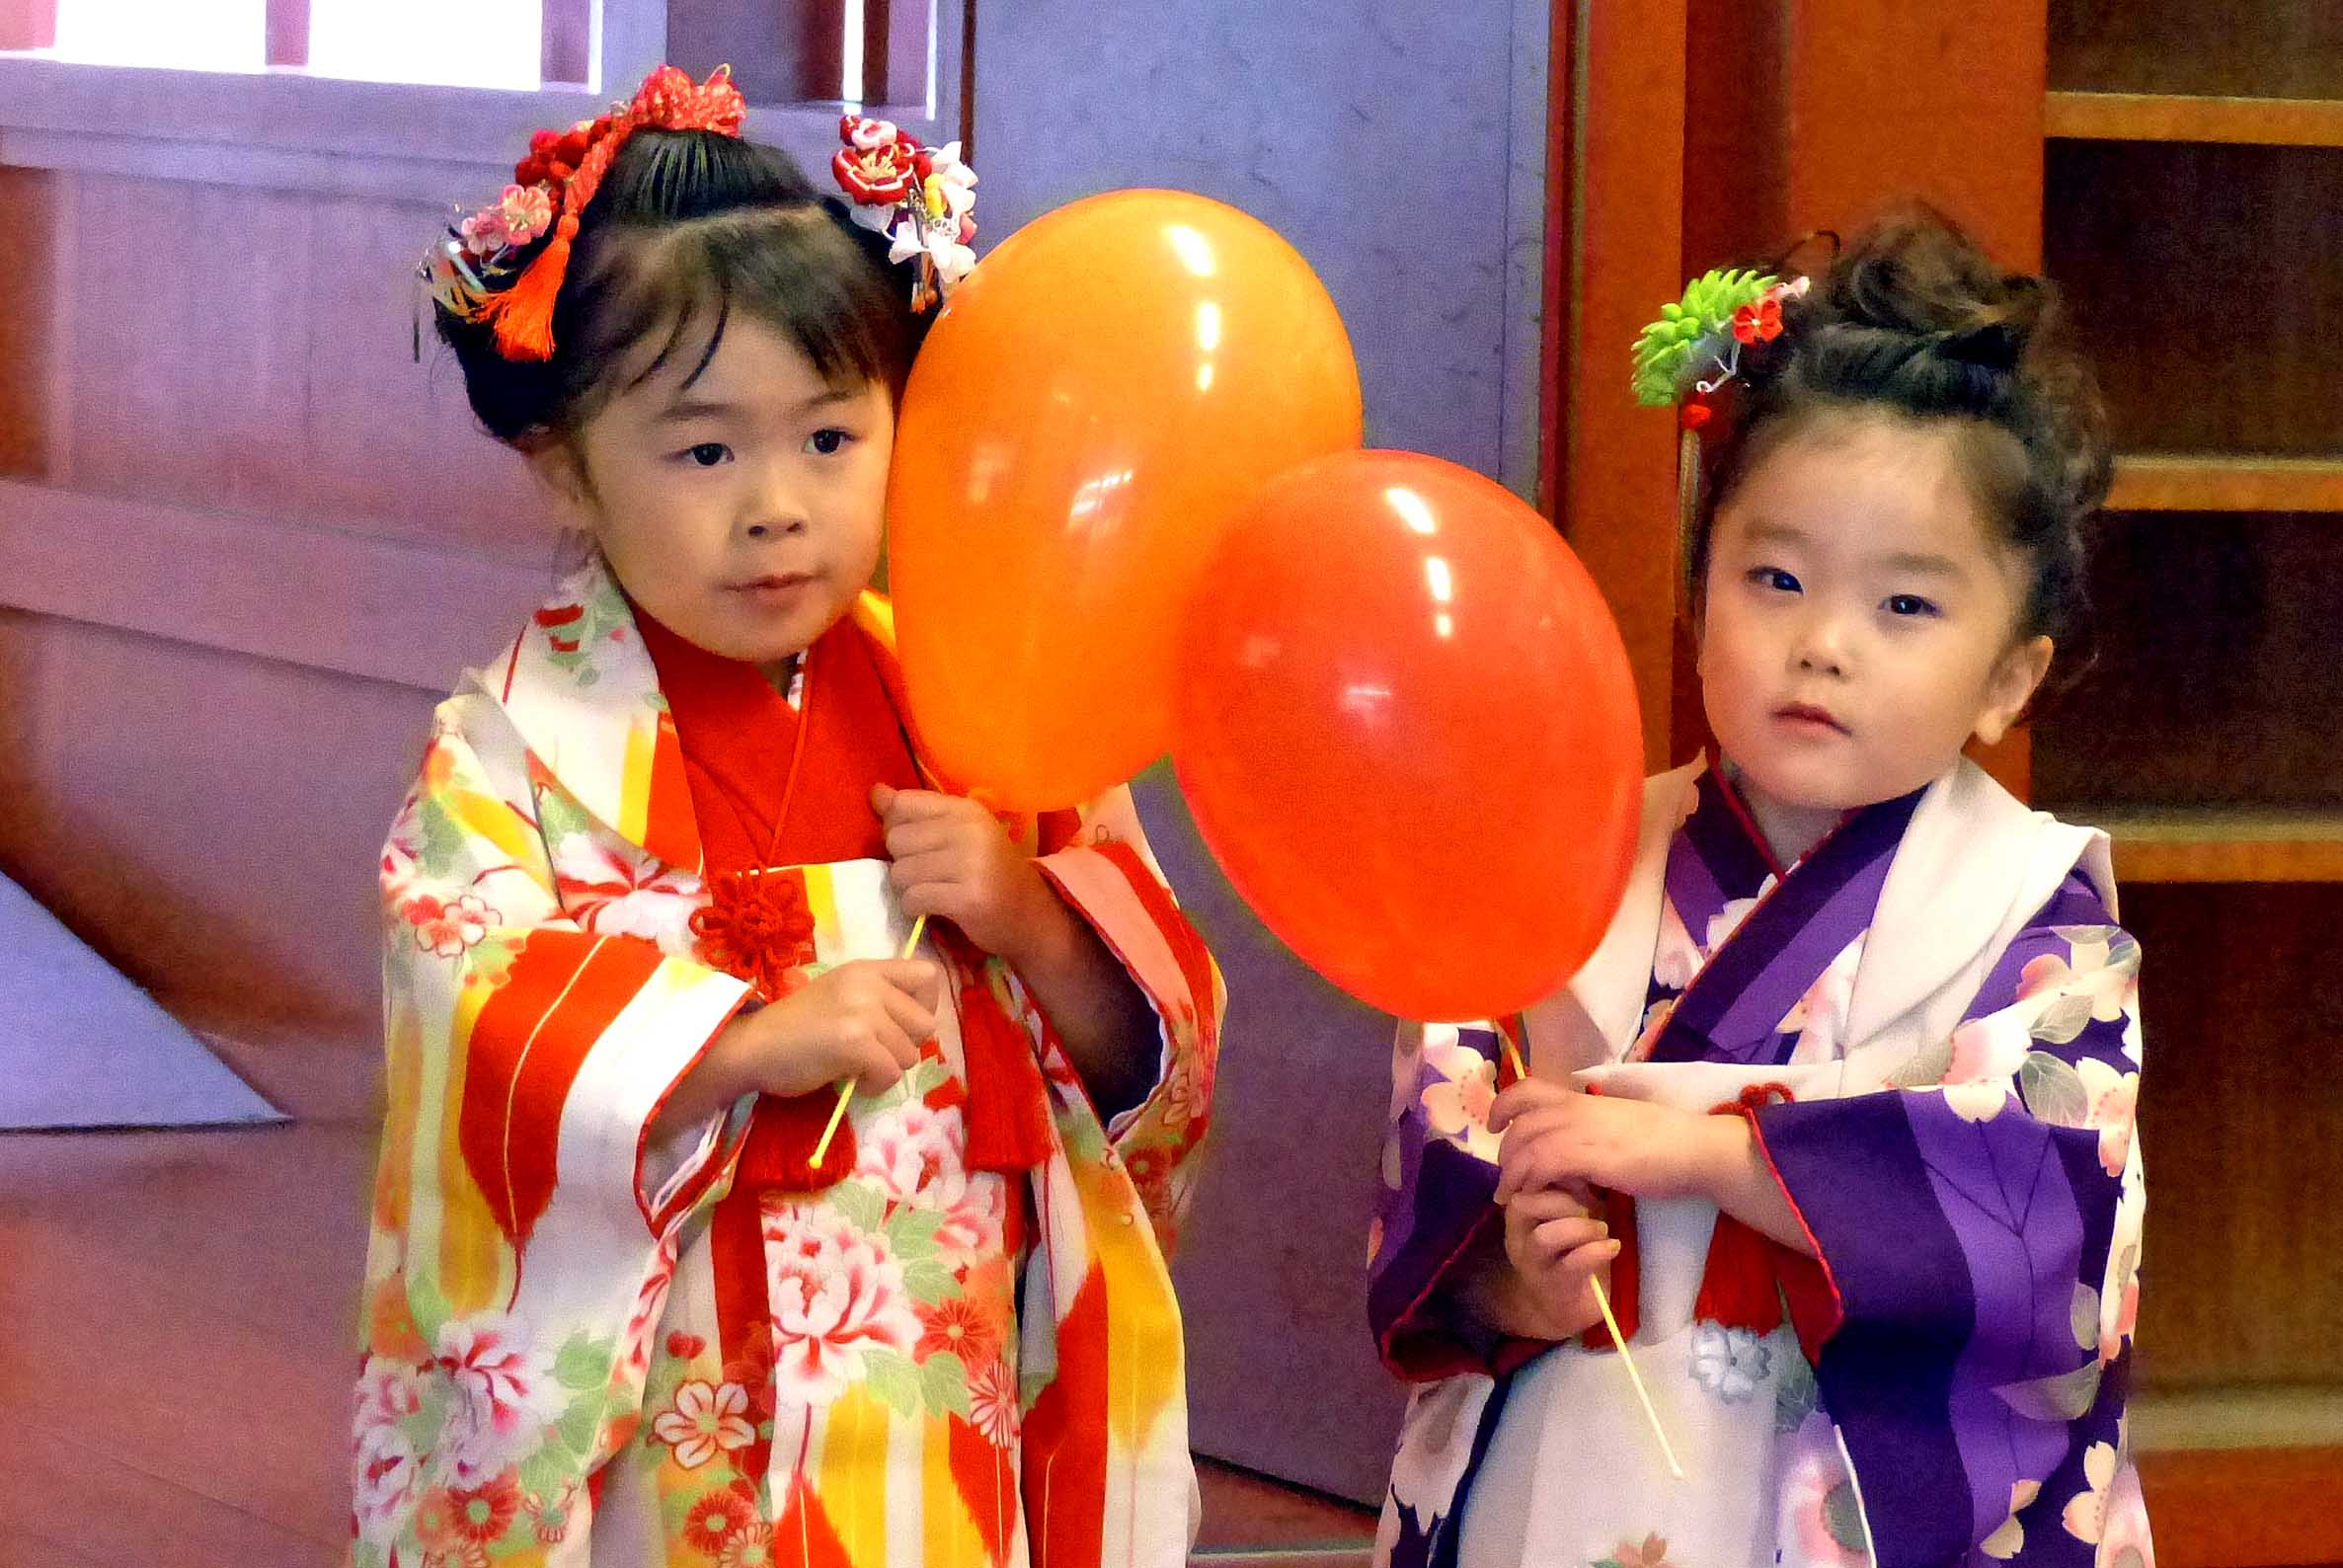 Two little girls in Japanese costume with balloons